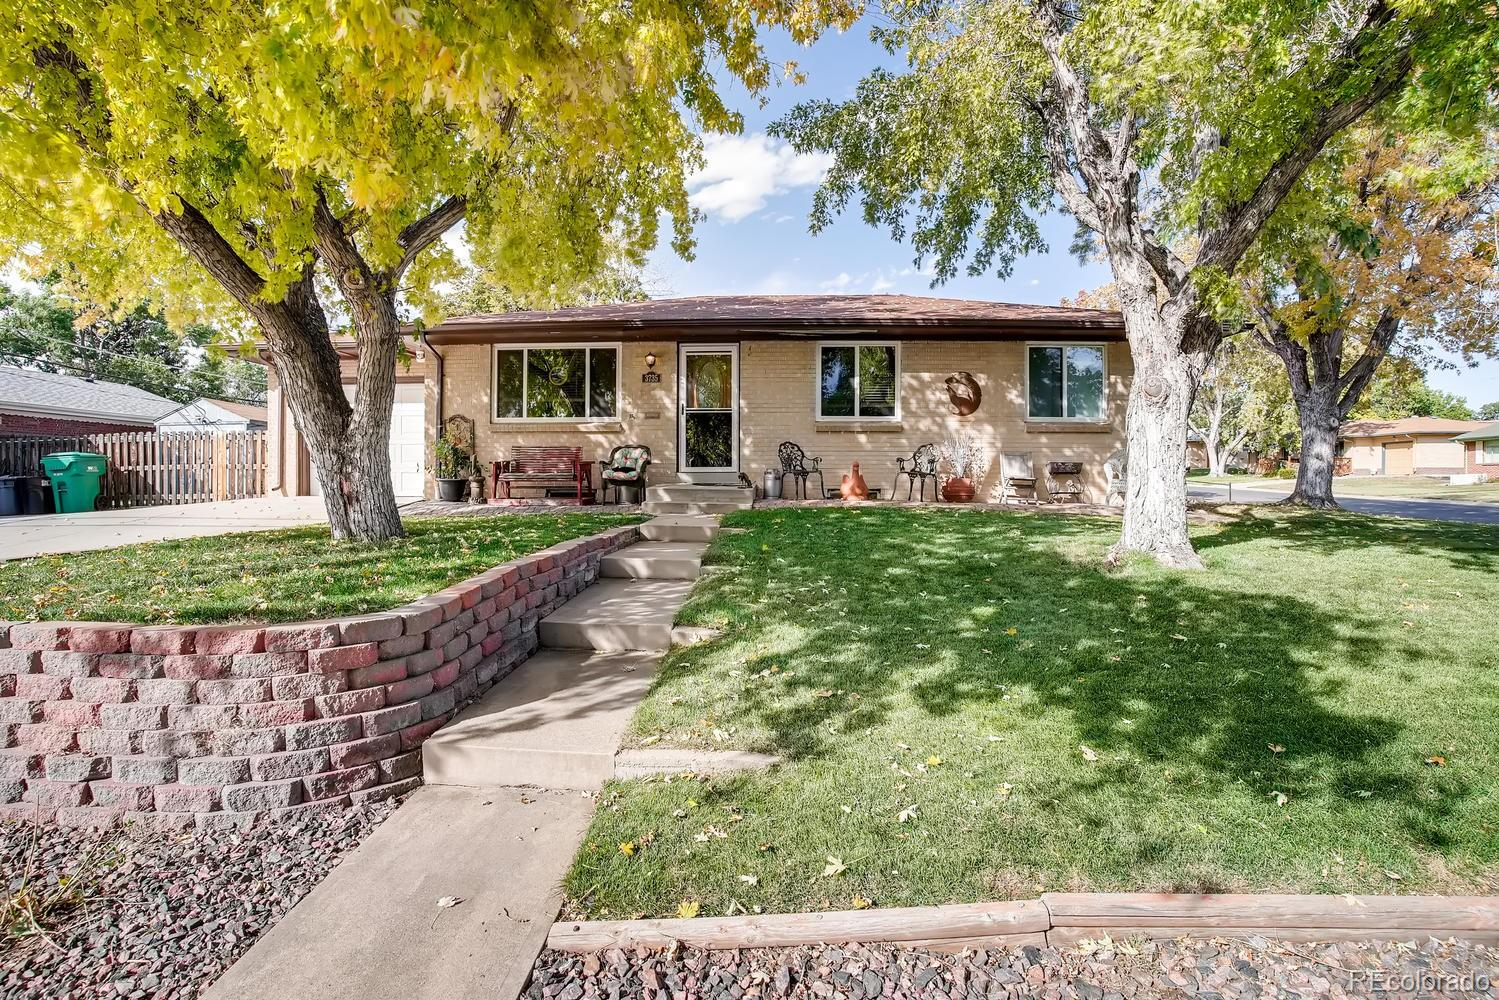 Located on a spacious corner lot, pride of ownership shines throughout this lovely brick ranch home in Rangeview Acres. The main floor features 3 beds, living room, kitchen w/breakfast nook and a full bath.  The finished basement features 2 non-conforming bedrooms, 3/4 bath, family room and laundry w/storage shelves - perfect for guests or teen wanting their own space. This home lives larger than it looks. The energy efficient furnace, central air  and ceiling fans keep this home comfortable all year long. Newer energy efficient windows & sliding glass door. The backyard shed provides even more storage space. Enjoy warm summer evenings on the deck or people watching from the front cobblestone porch.   Mature trees provide ample shade in front and the backyard gardens are sure to please. Oversized driveway pad for extra parking.  Charming inside and out.  This home is move-in ready!  It is easy to picture yourself calling this one home.  No HOA! Close to dining, shopping, entertainment and other amenities. Easy access to Highway 36.  A short commute to Broomfield, Thornton, Denver, Boulder and beyond. Don't miss your opportunity. Welcome Home!